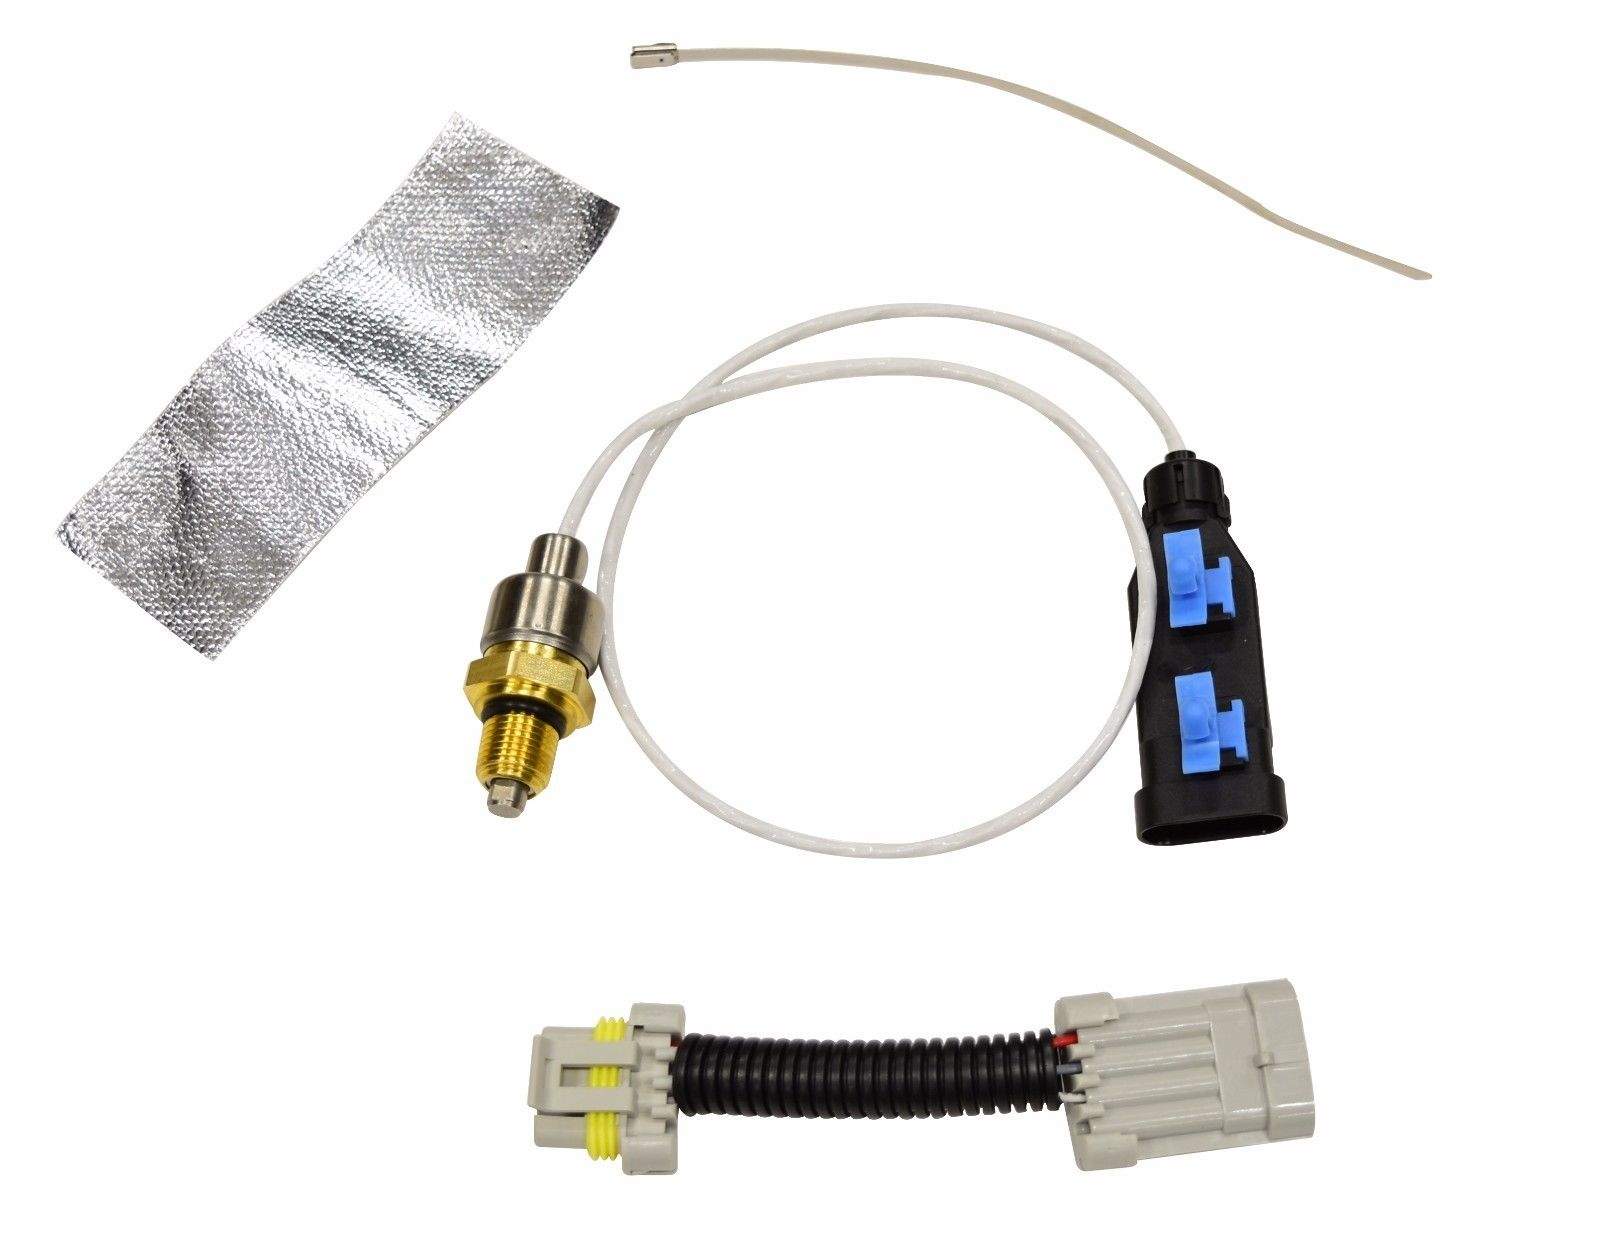 SPOOLOGIC Turbo Vane Position Sensor Kit for 04-15 LLY LBZ LMM LML Duramax